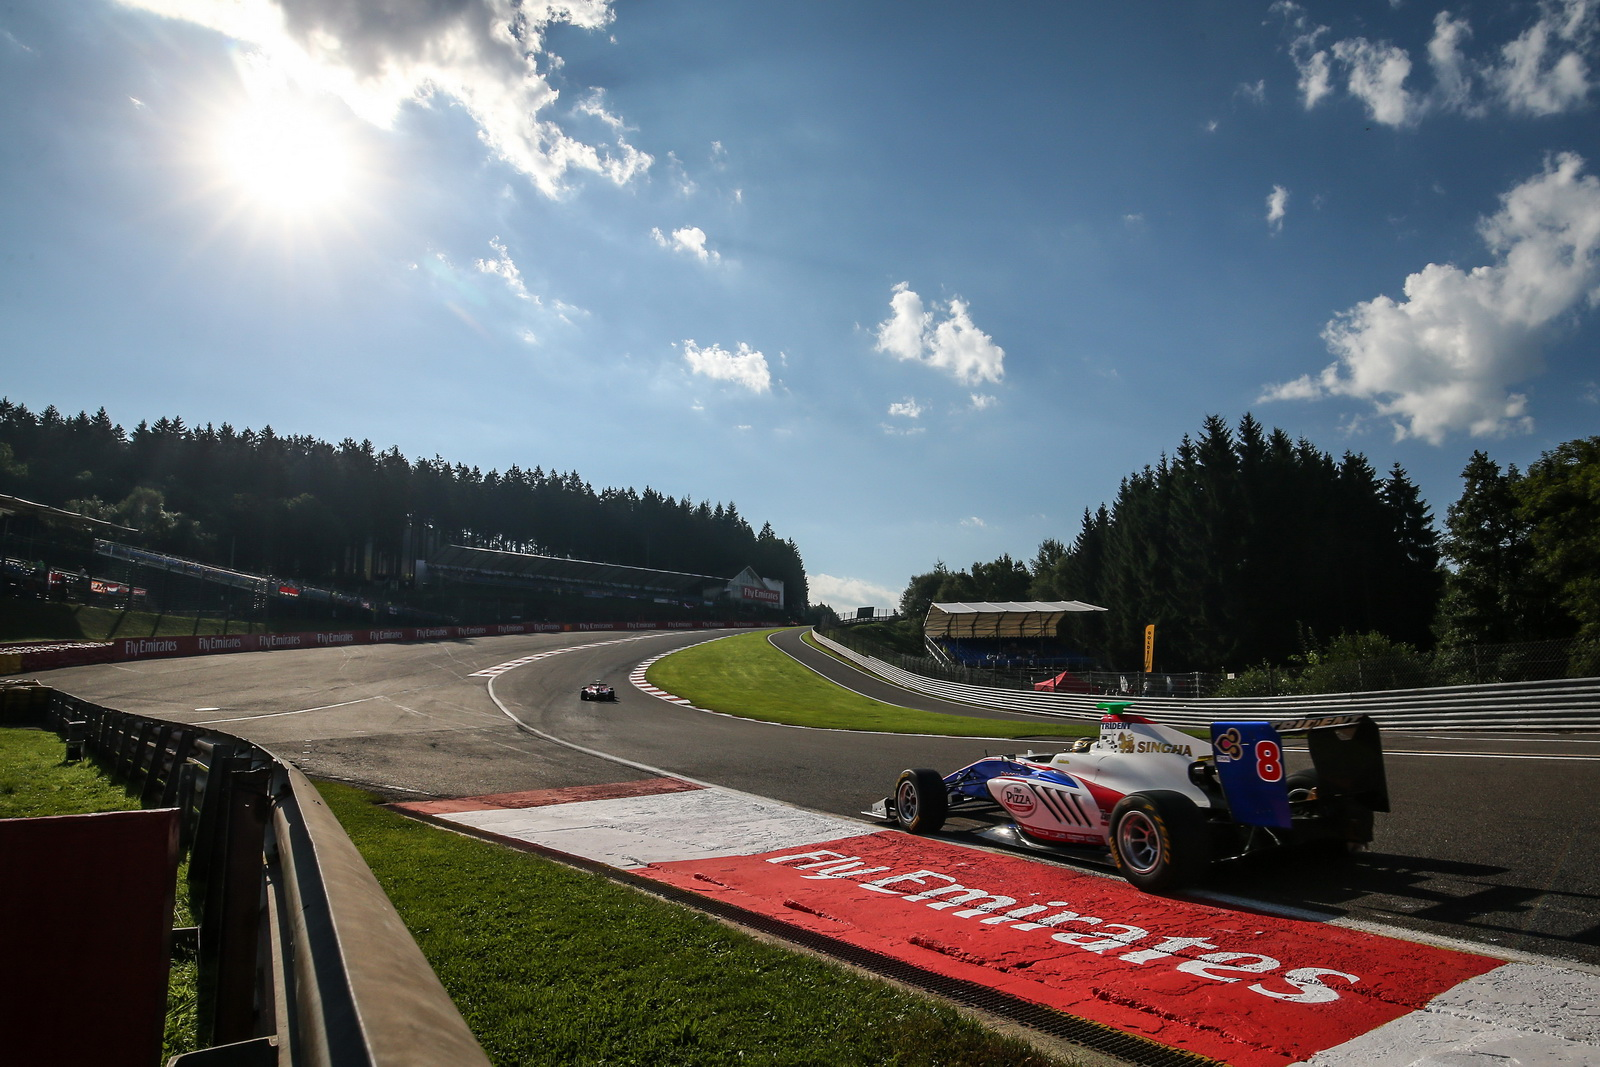 FRANCORCHAMPS (BEL) AUGUST 26-28 2016 - GP 2016 at Spa-Francorchamps. Sandy Stuvik #08 Trident. Action. ? 2016 Sebastiaan Rozendaal / Dutch Photo Agency